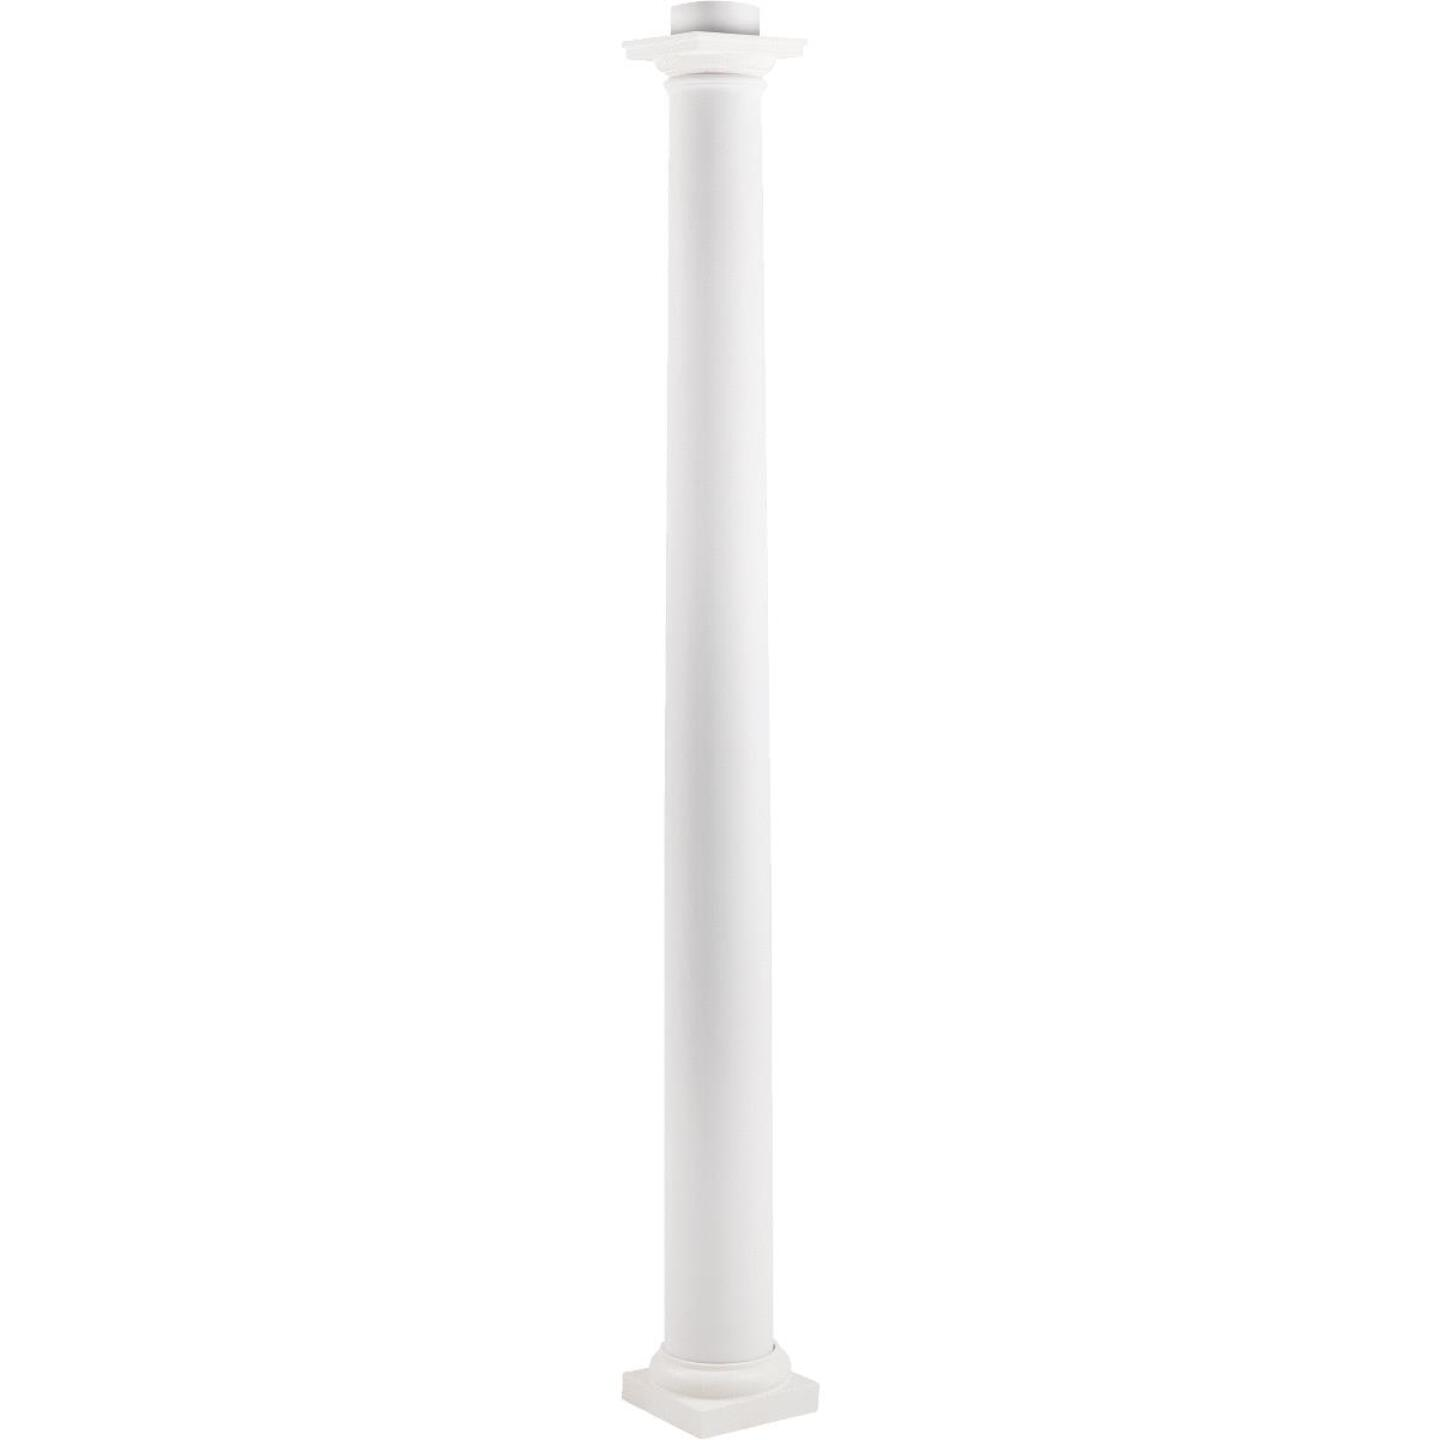 Crown Column 8 In. x 8 Ft. Unfinished Round Fiberglass Column Image 4